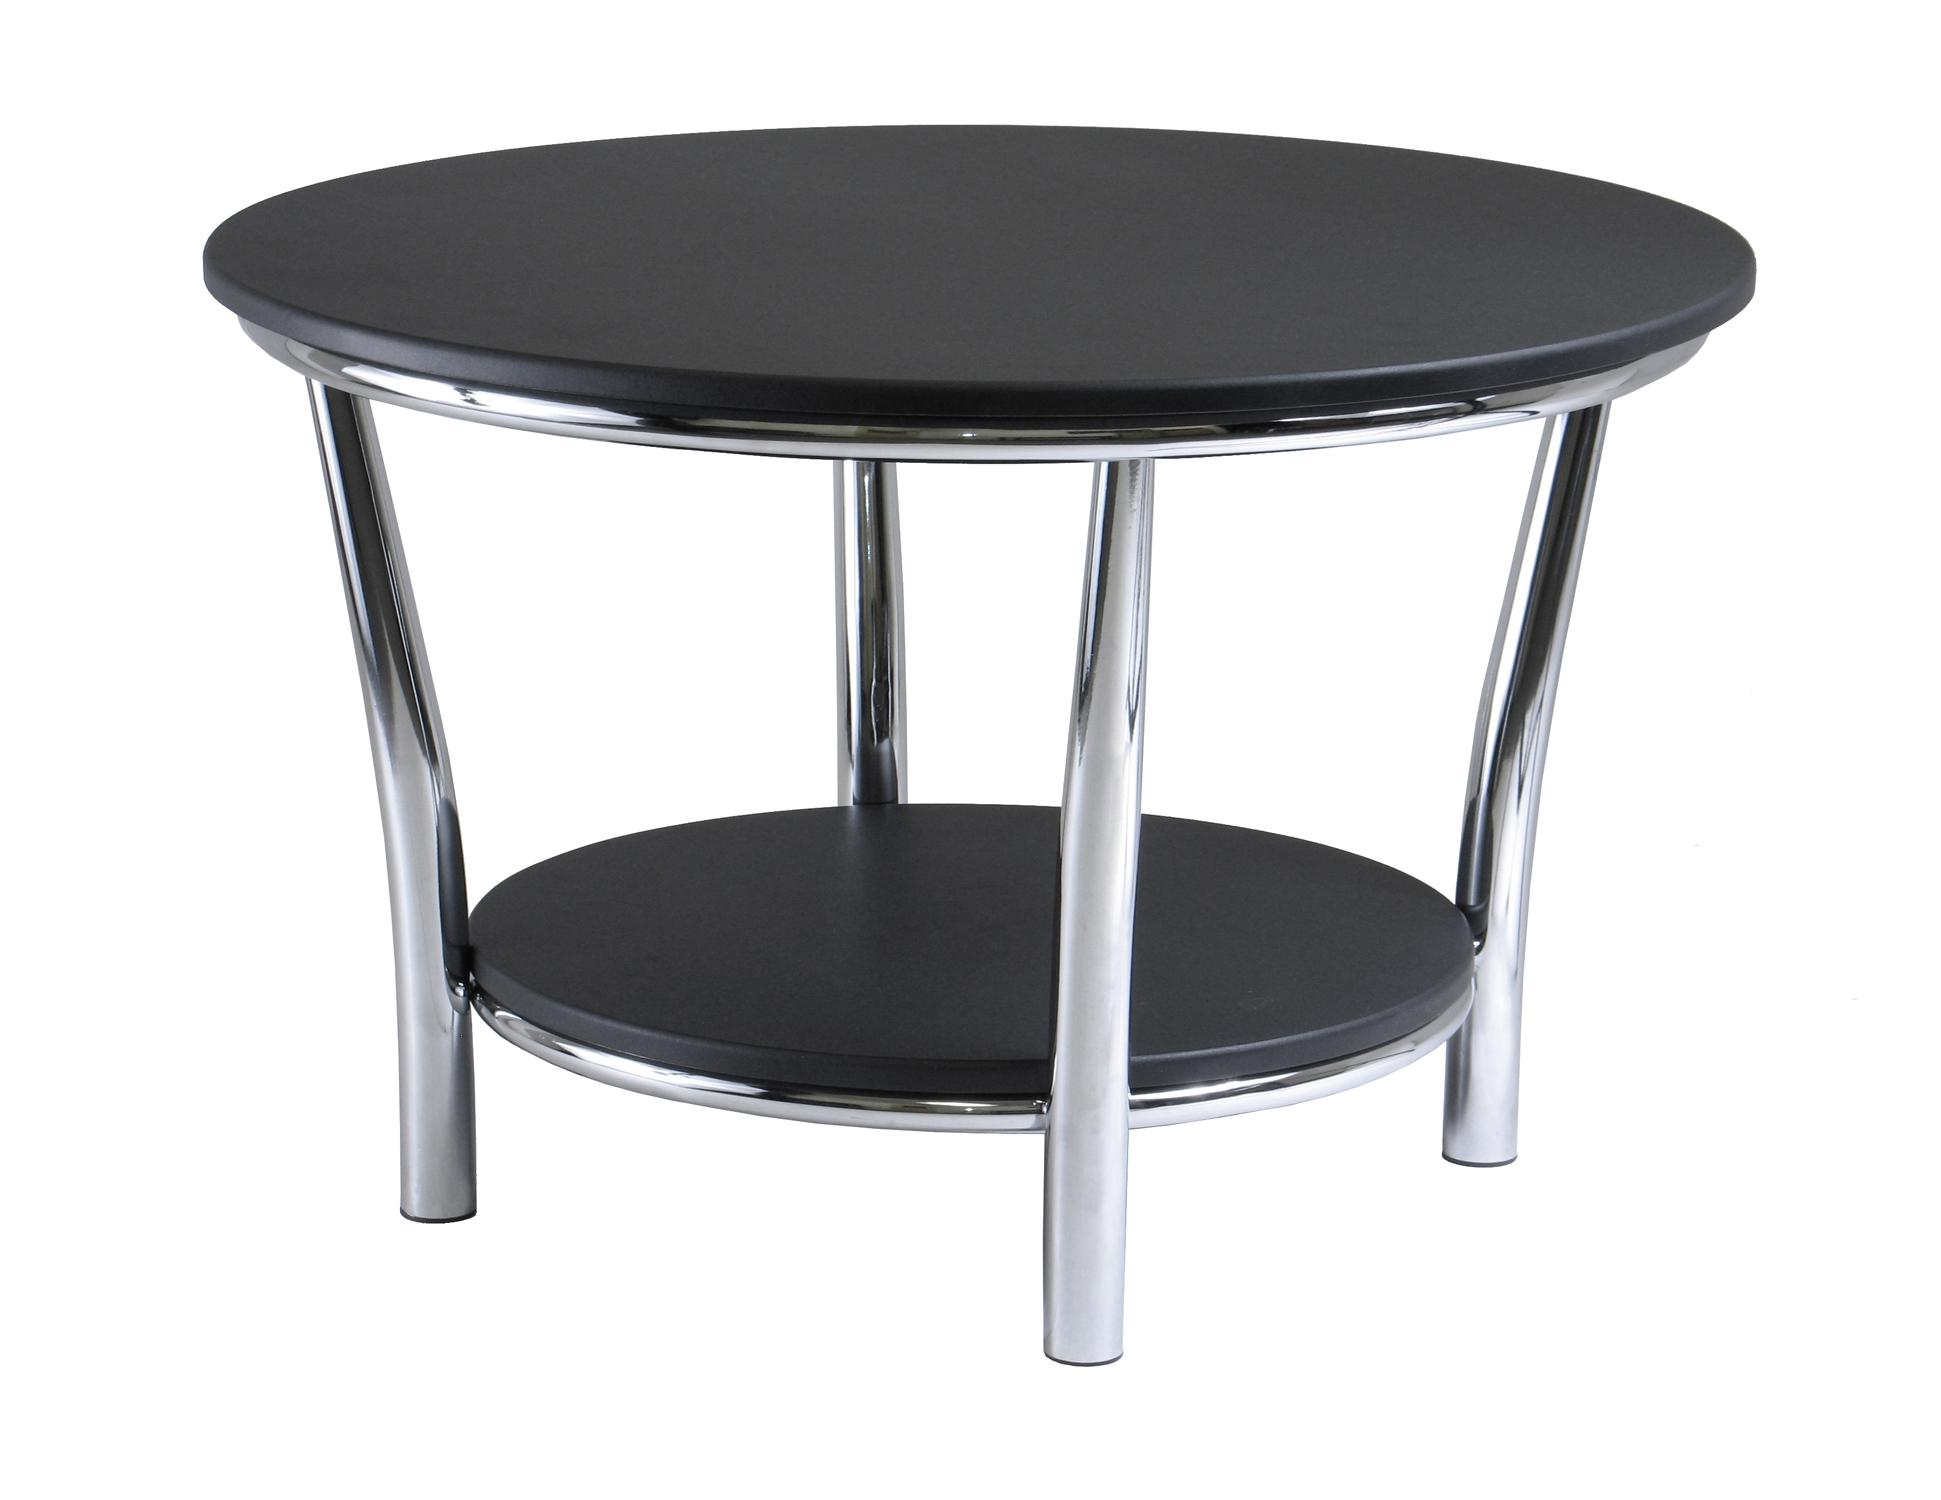 Furniture clipart coffee table 2017 Table Furniture Furniture Table